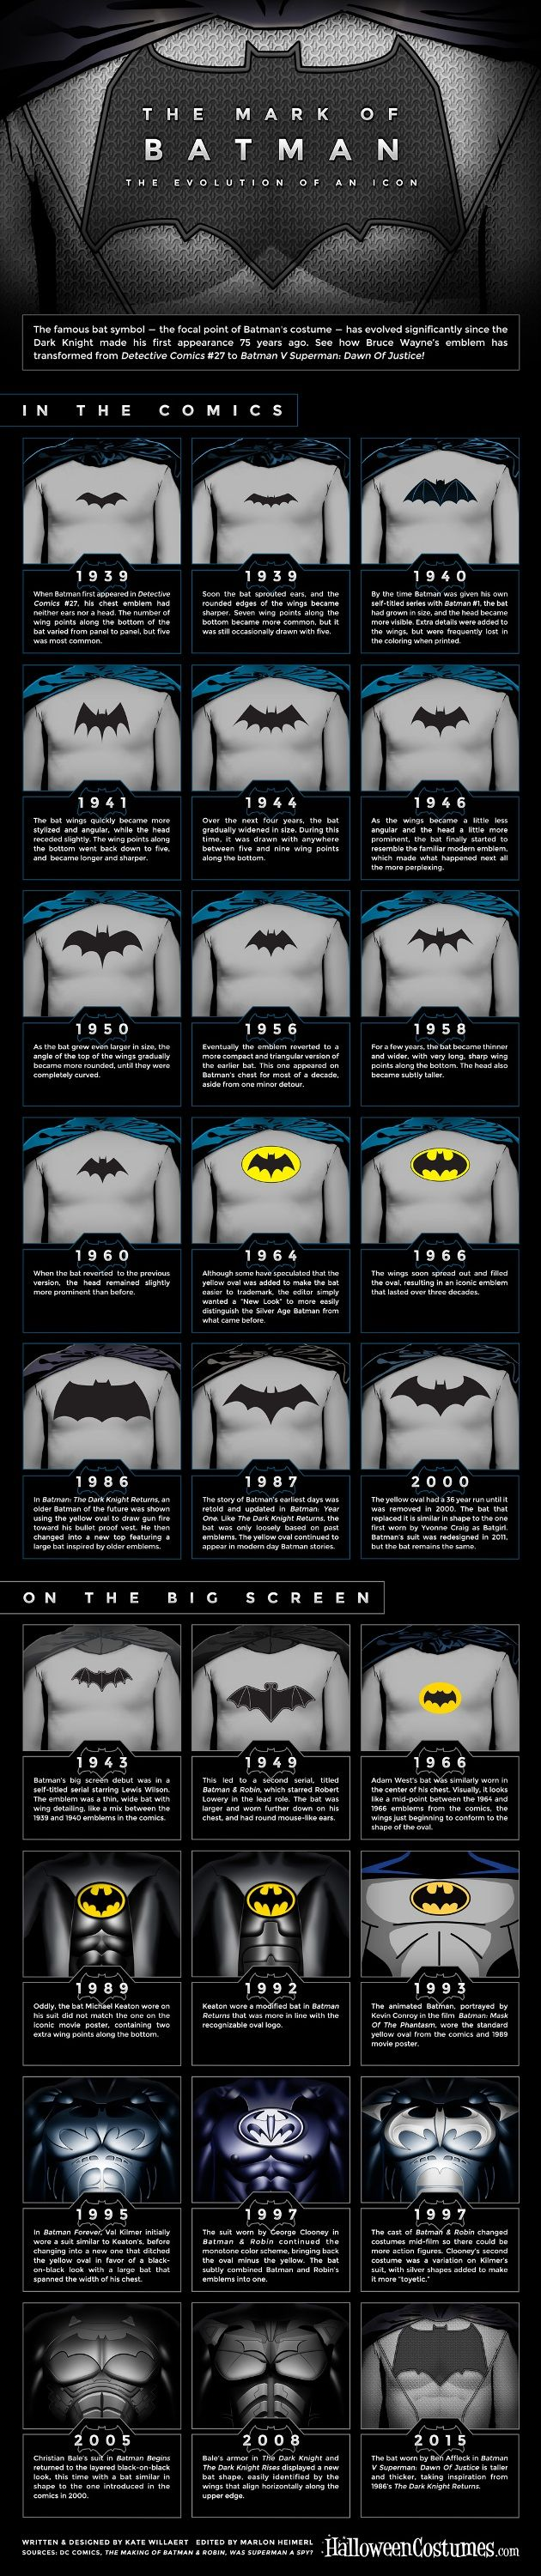 DC COMICS NEWS • The Batsymbol Through the Ages